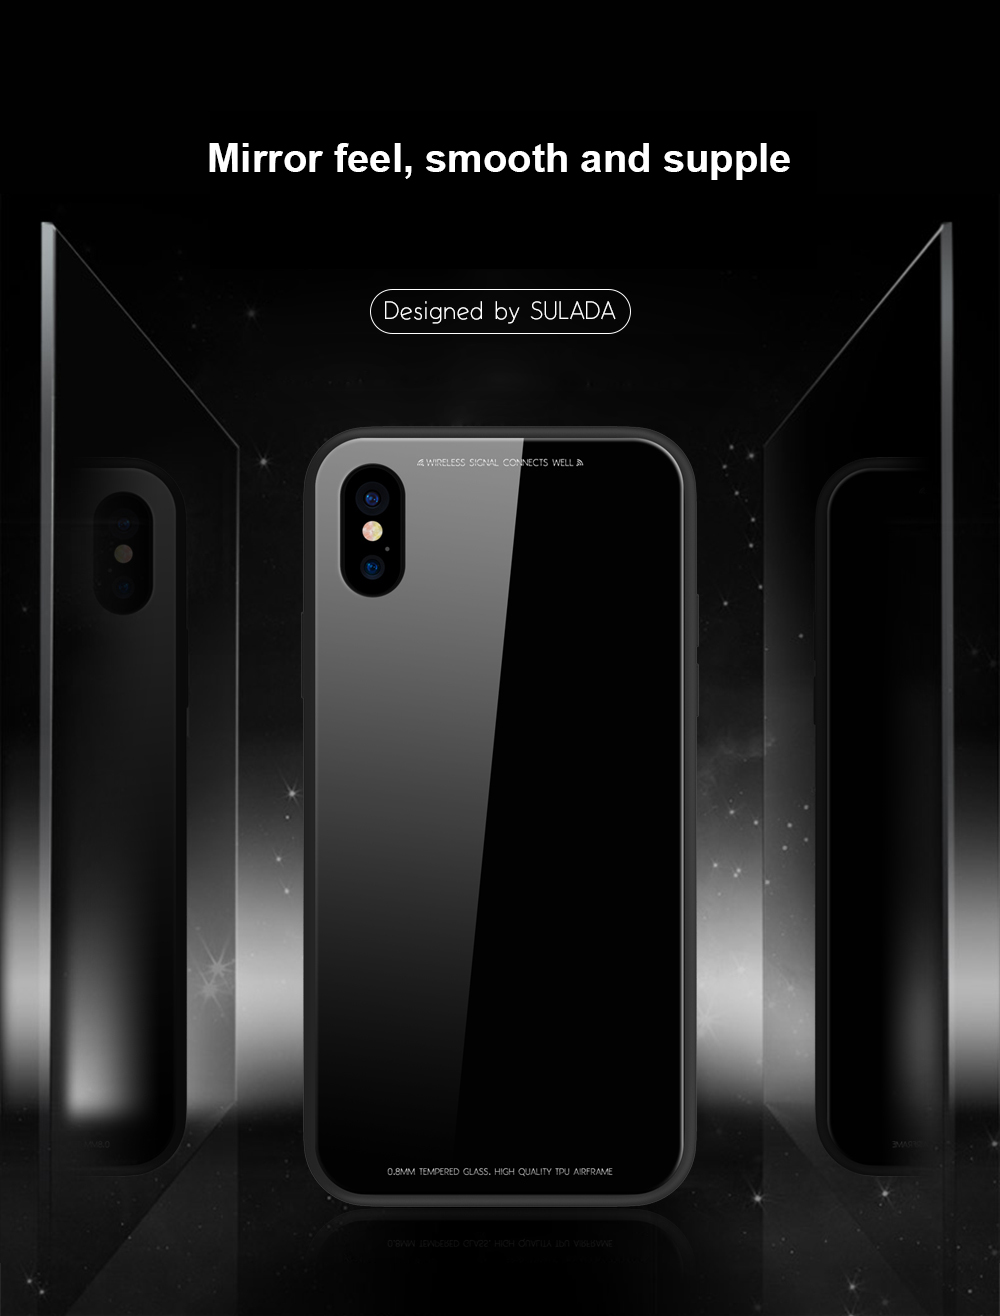 Sulada Metal Aluminium Bumper 9h Tempered Glass Back Case For Iphone Samsung Note 4 Mirror Backcase With Black X 6 6s Plus